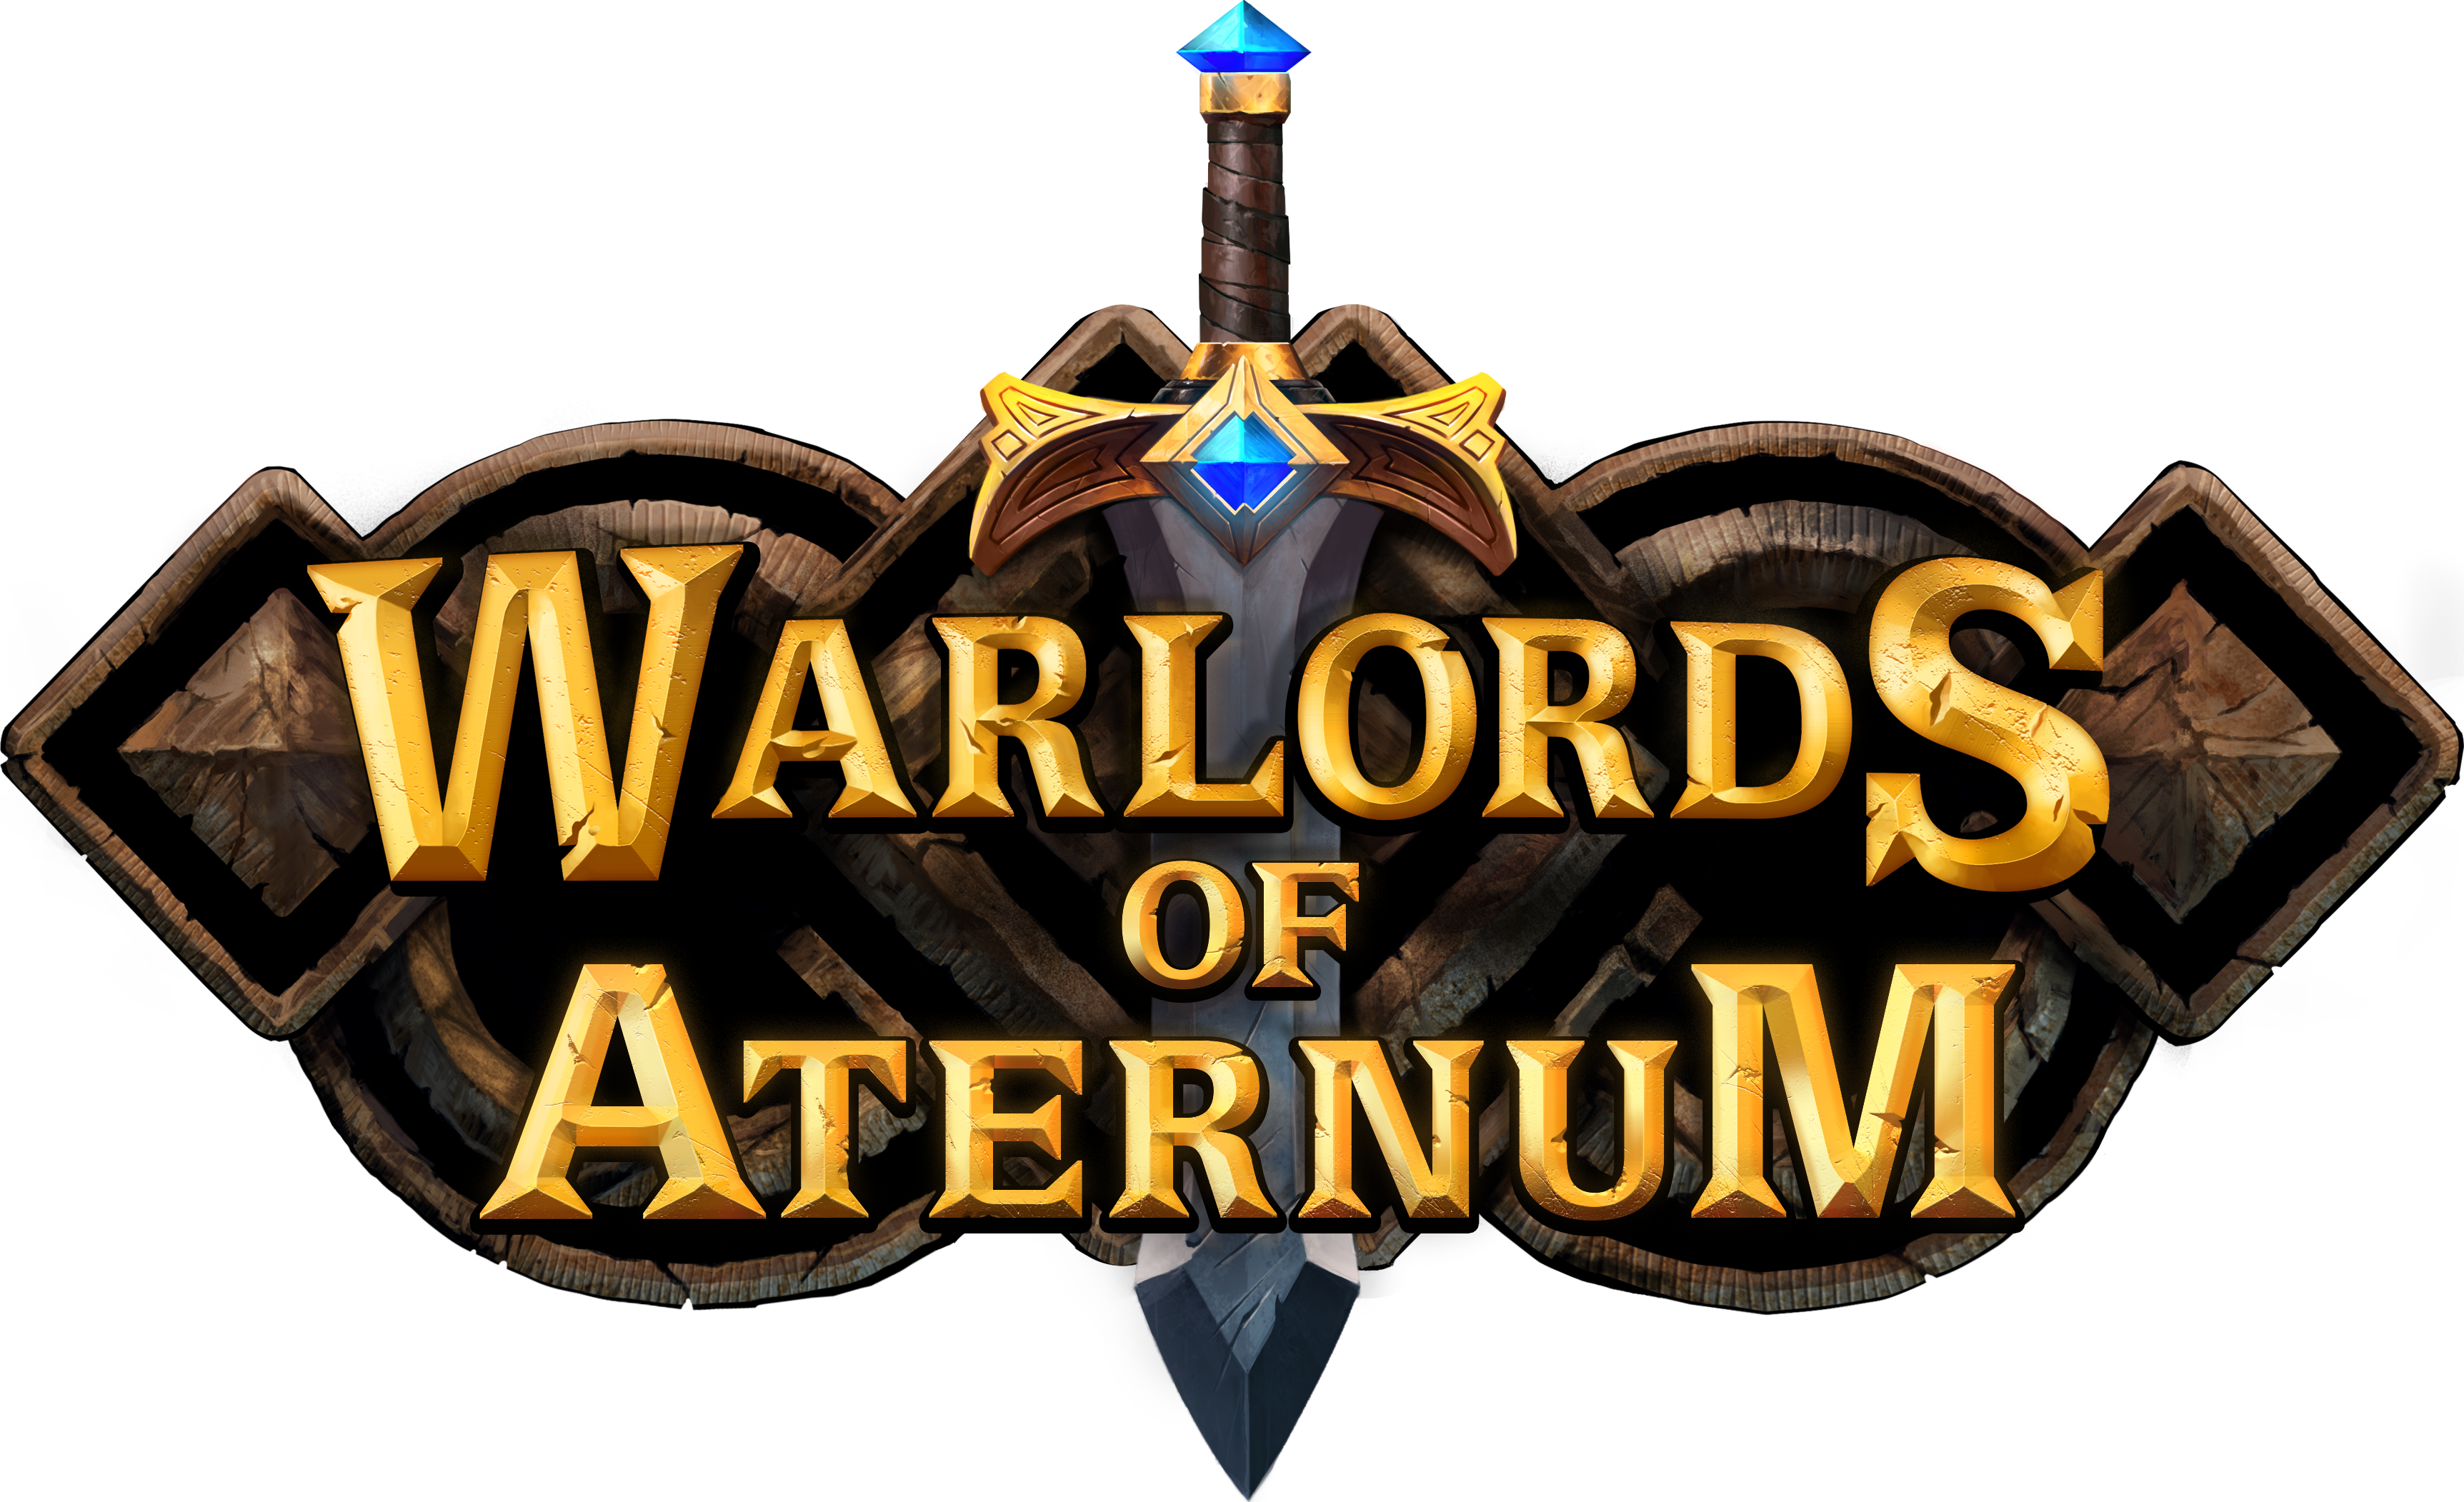 warlords_of_aternum_logo_final